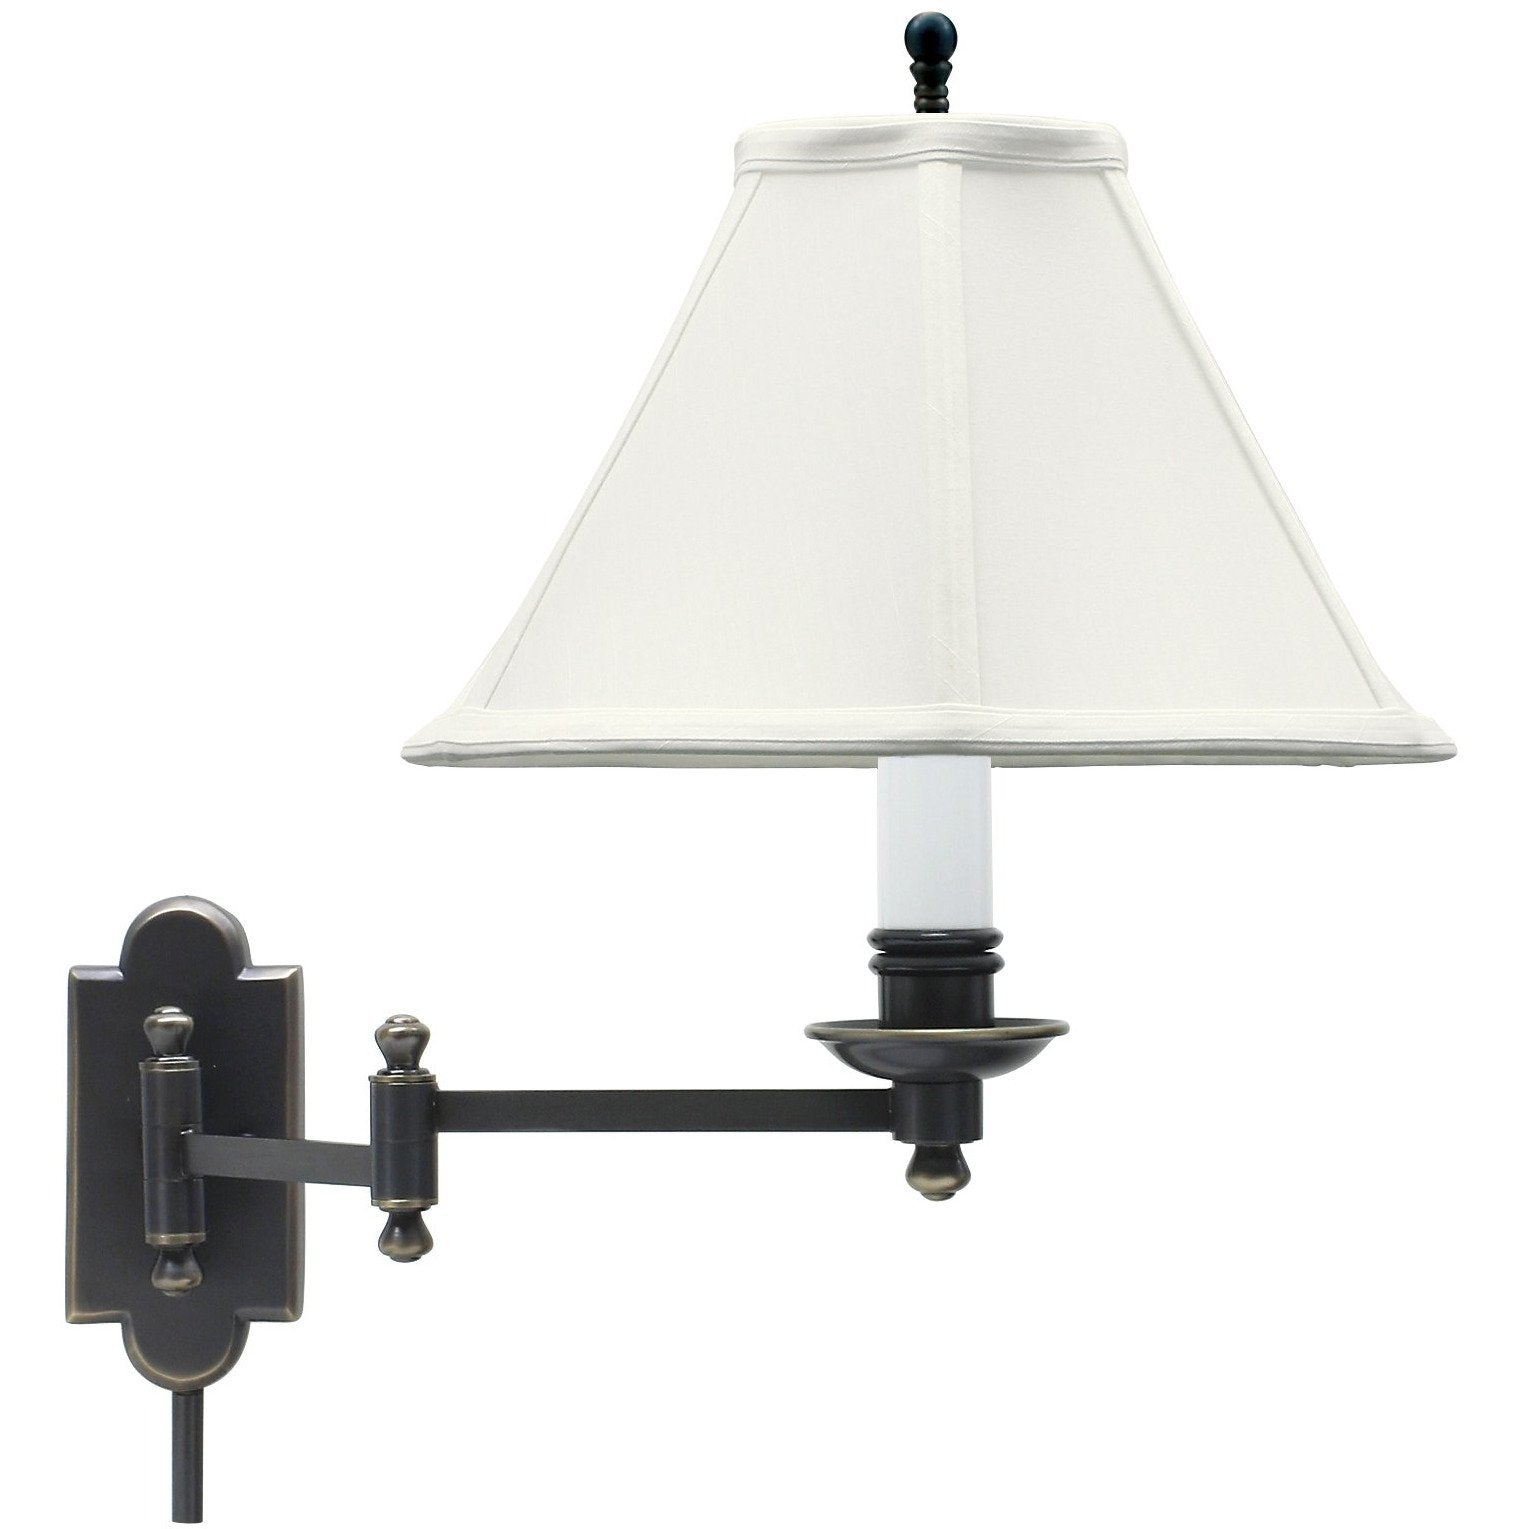 House Of Troy Wall Lamps Club Wall Swing Arm Lamp by House Of Troy CL225-OB